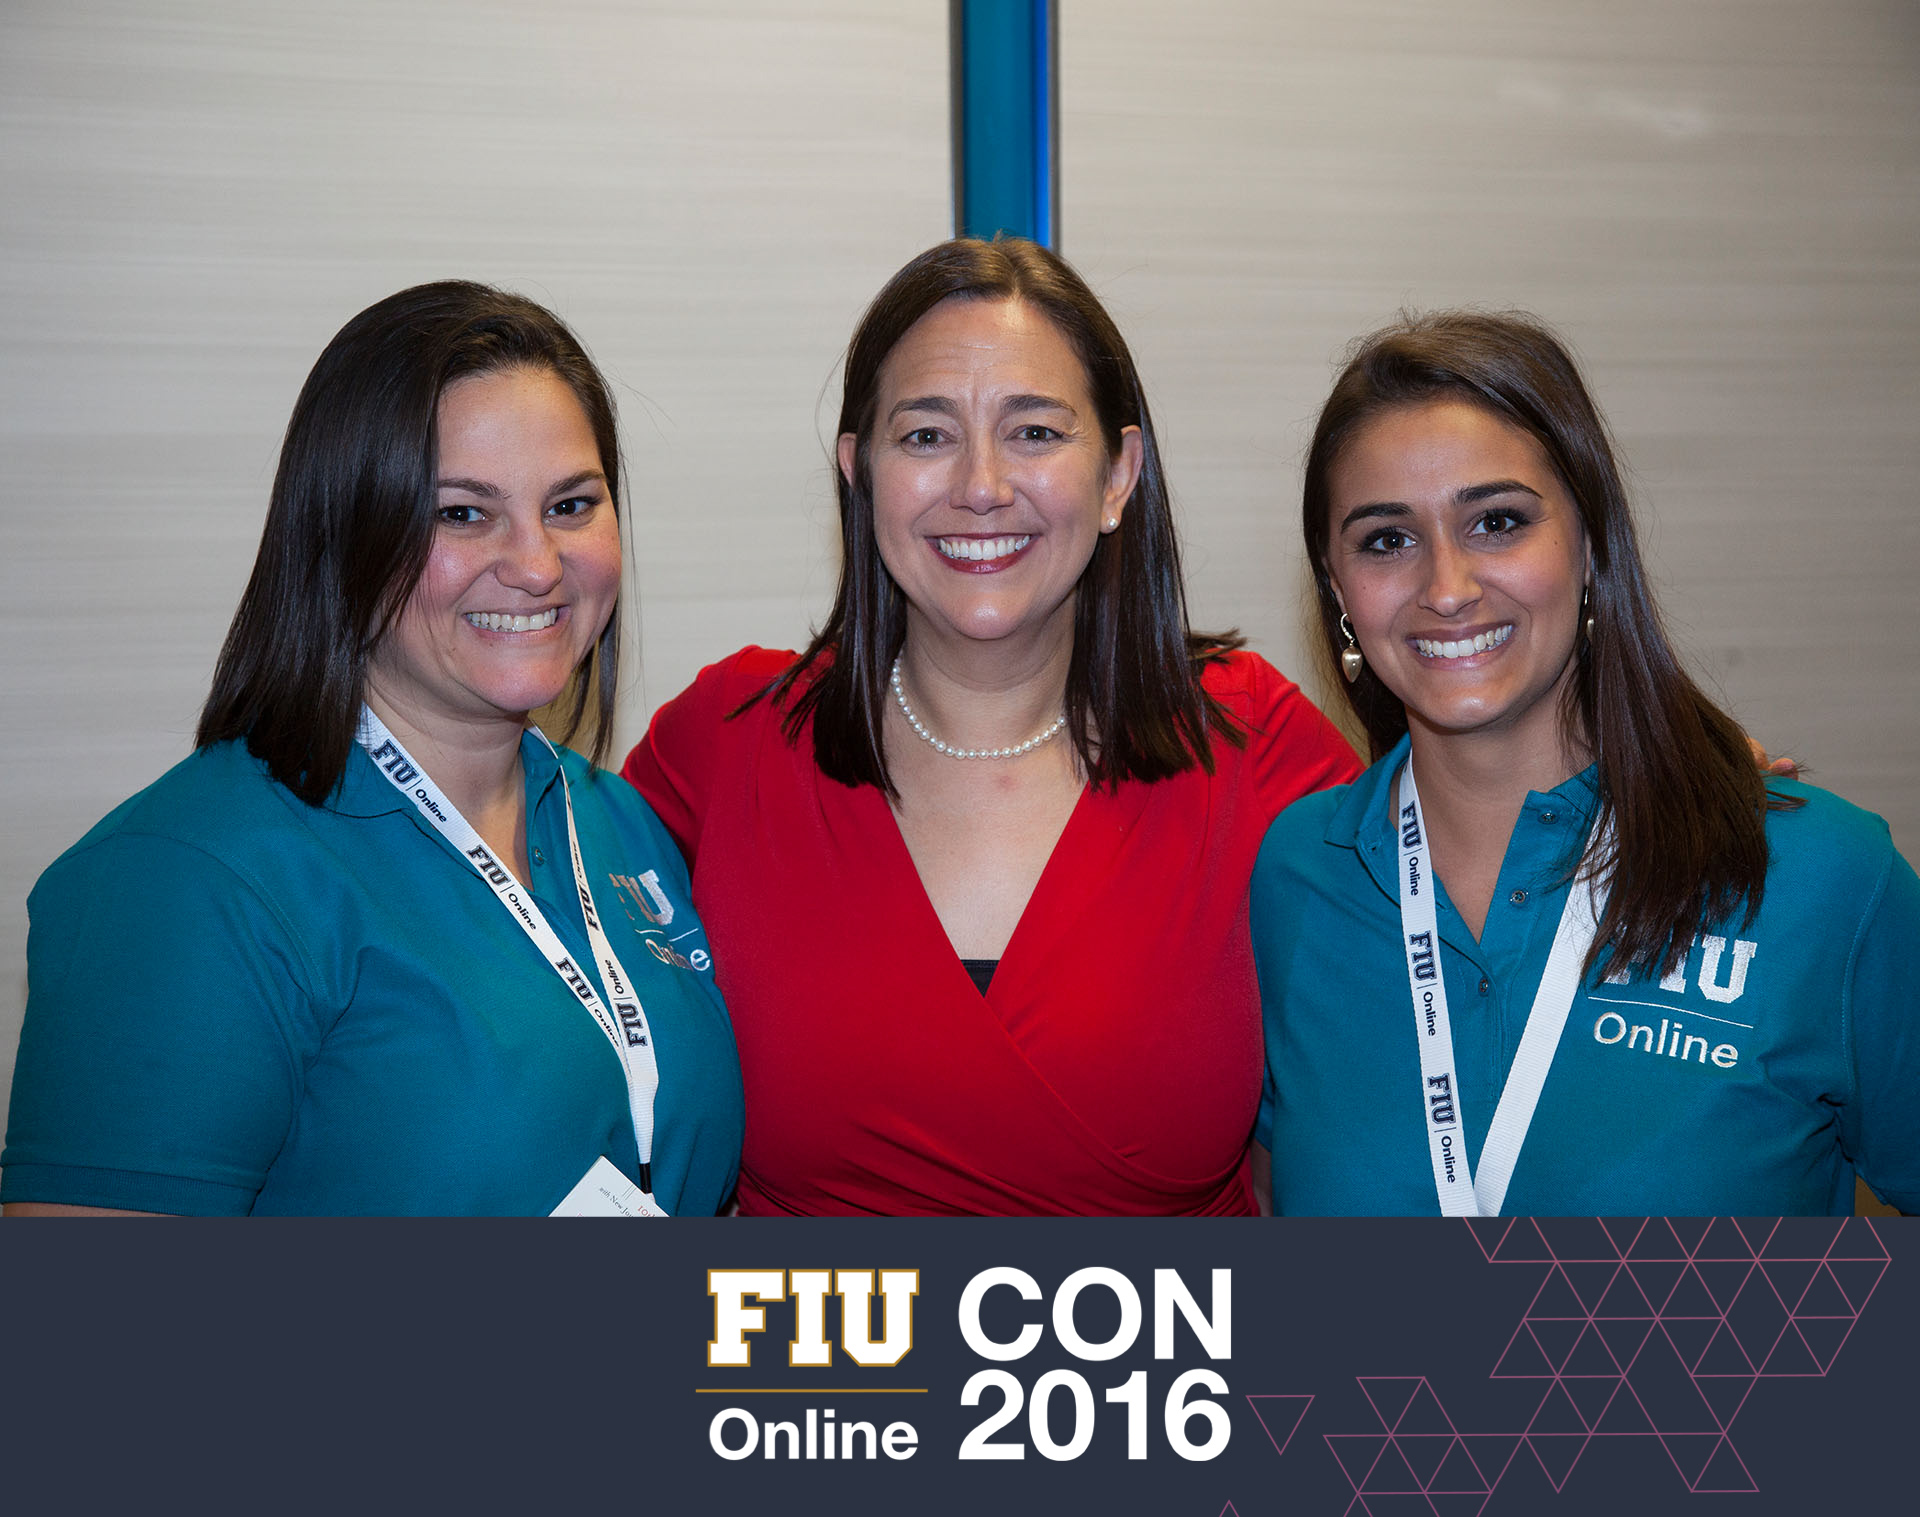 199.jpg FIU Online conference photos